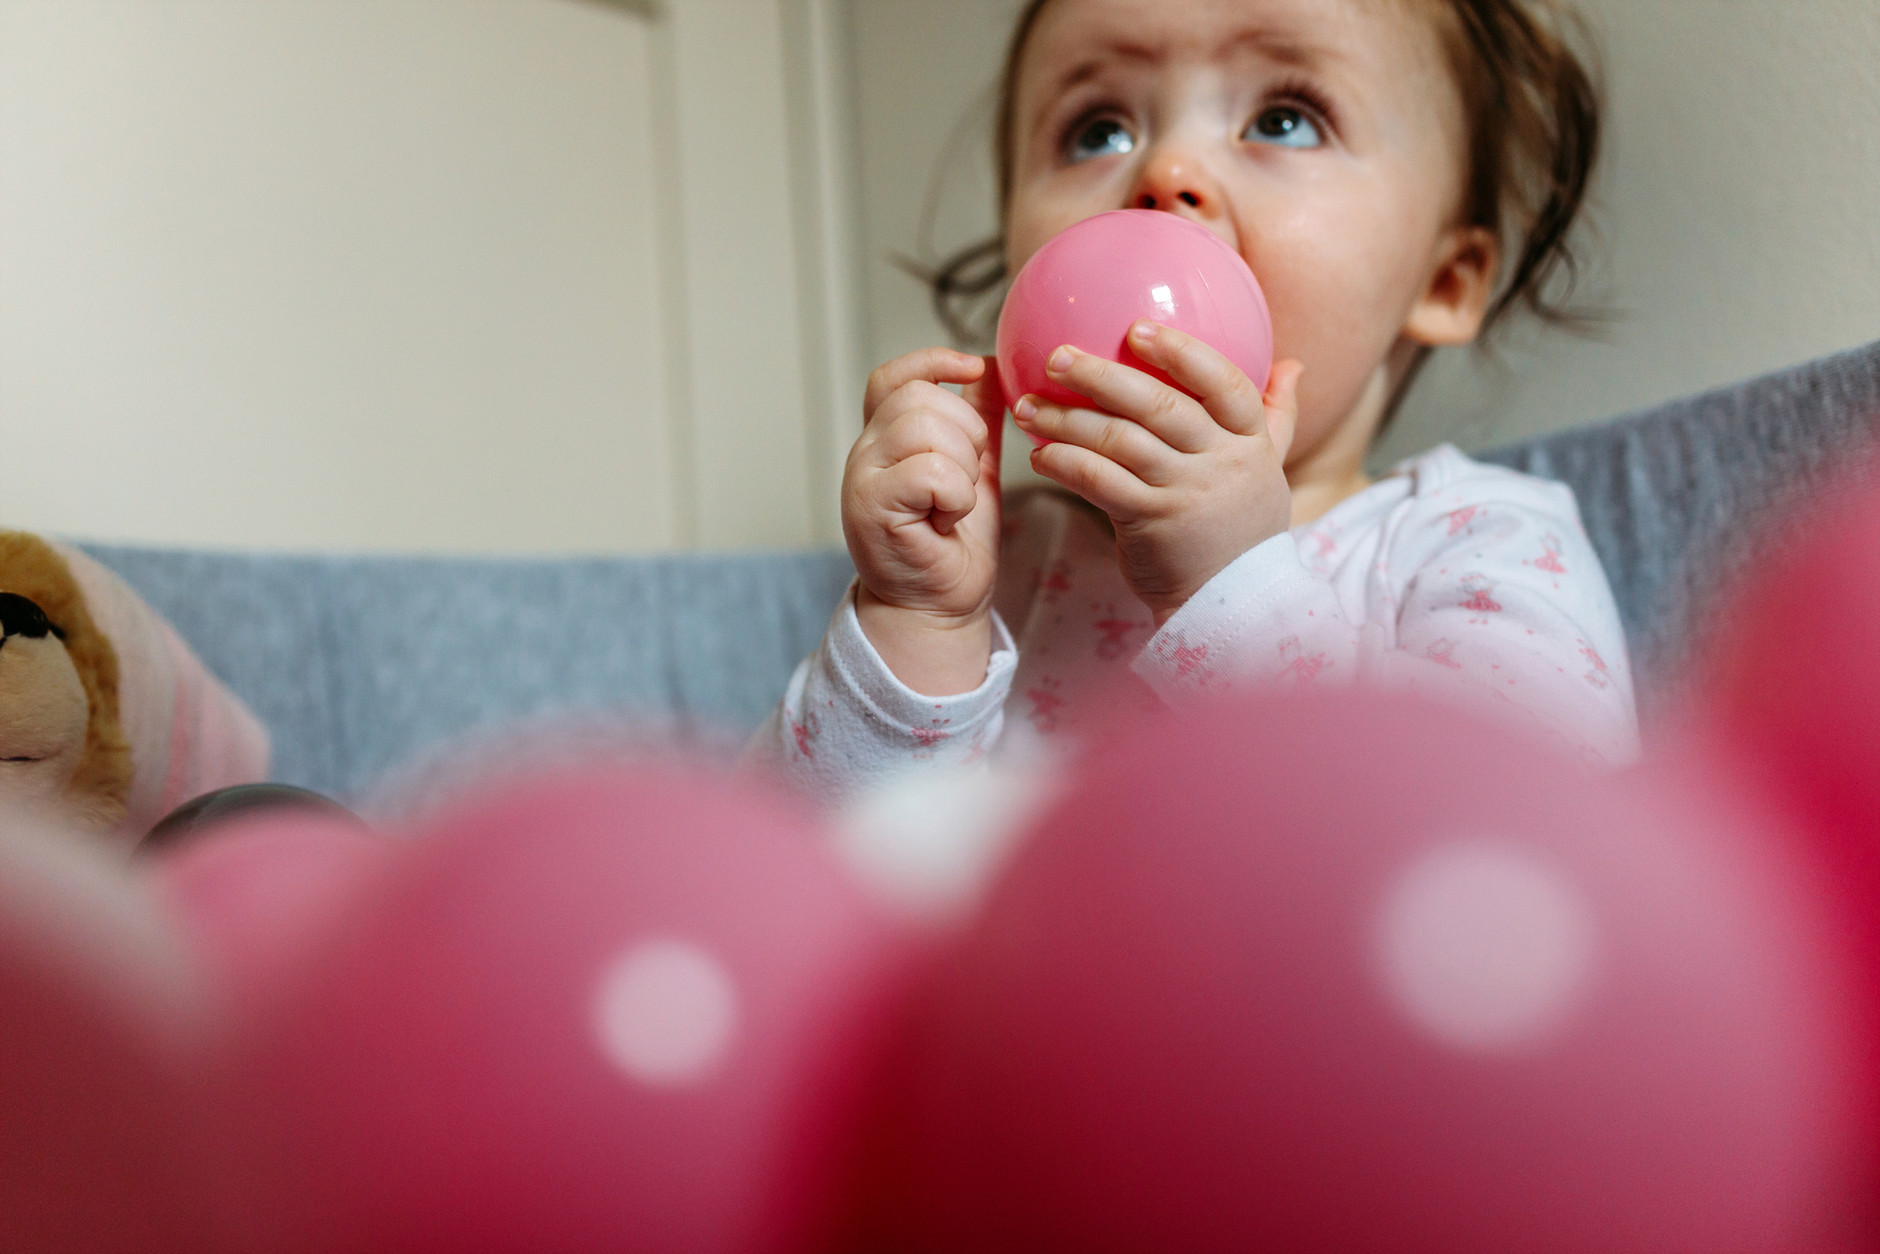 Close up of baby girl licking a pink ball from the ball pool